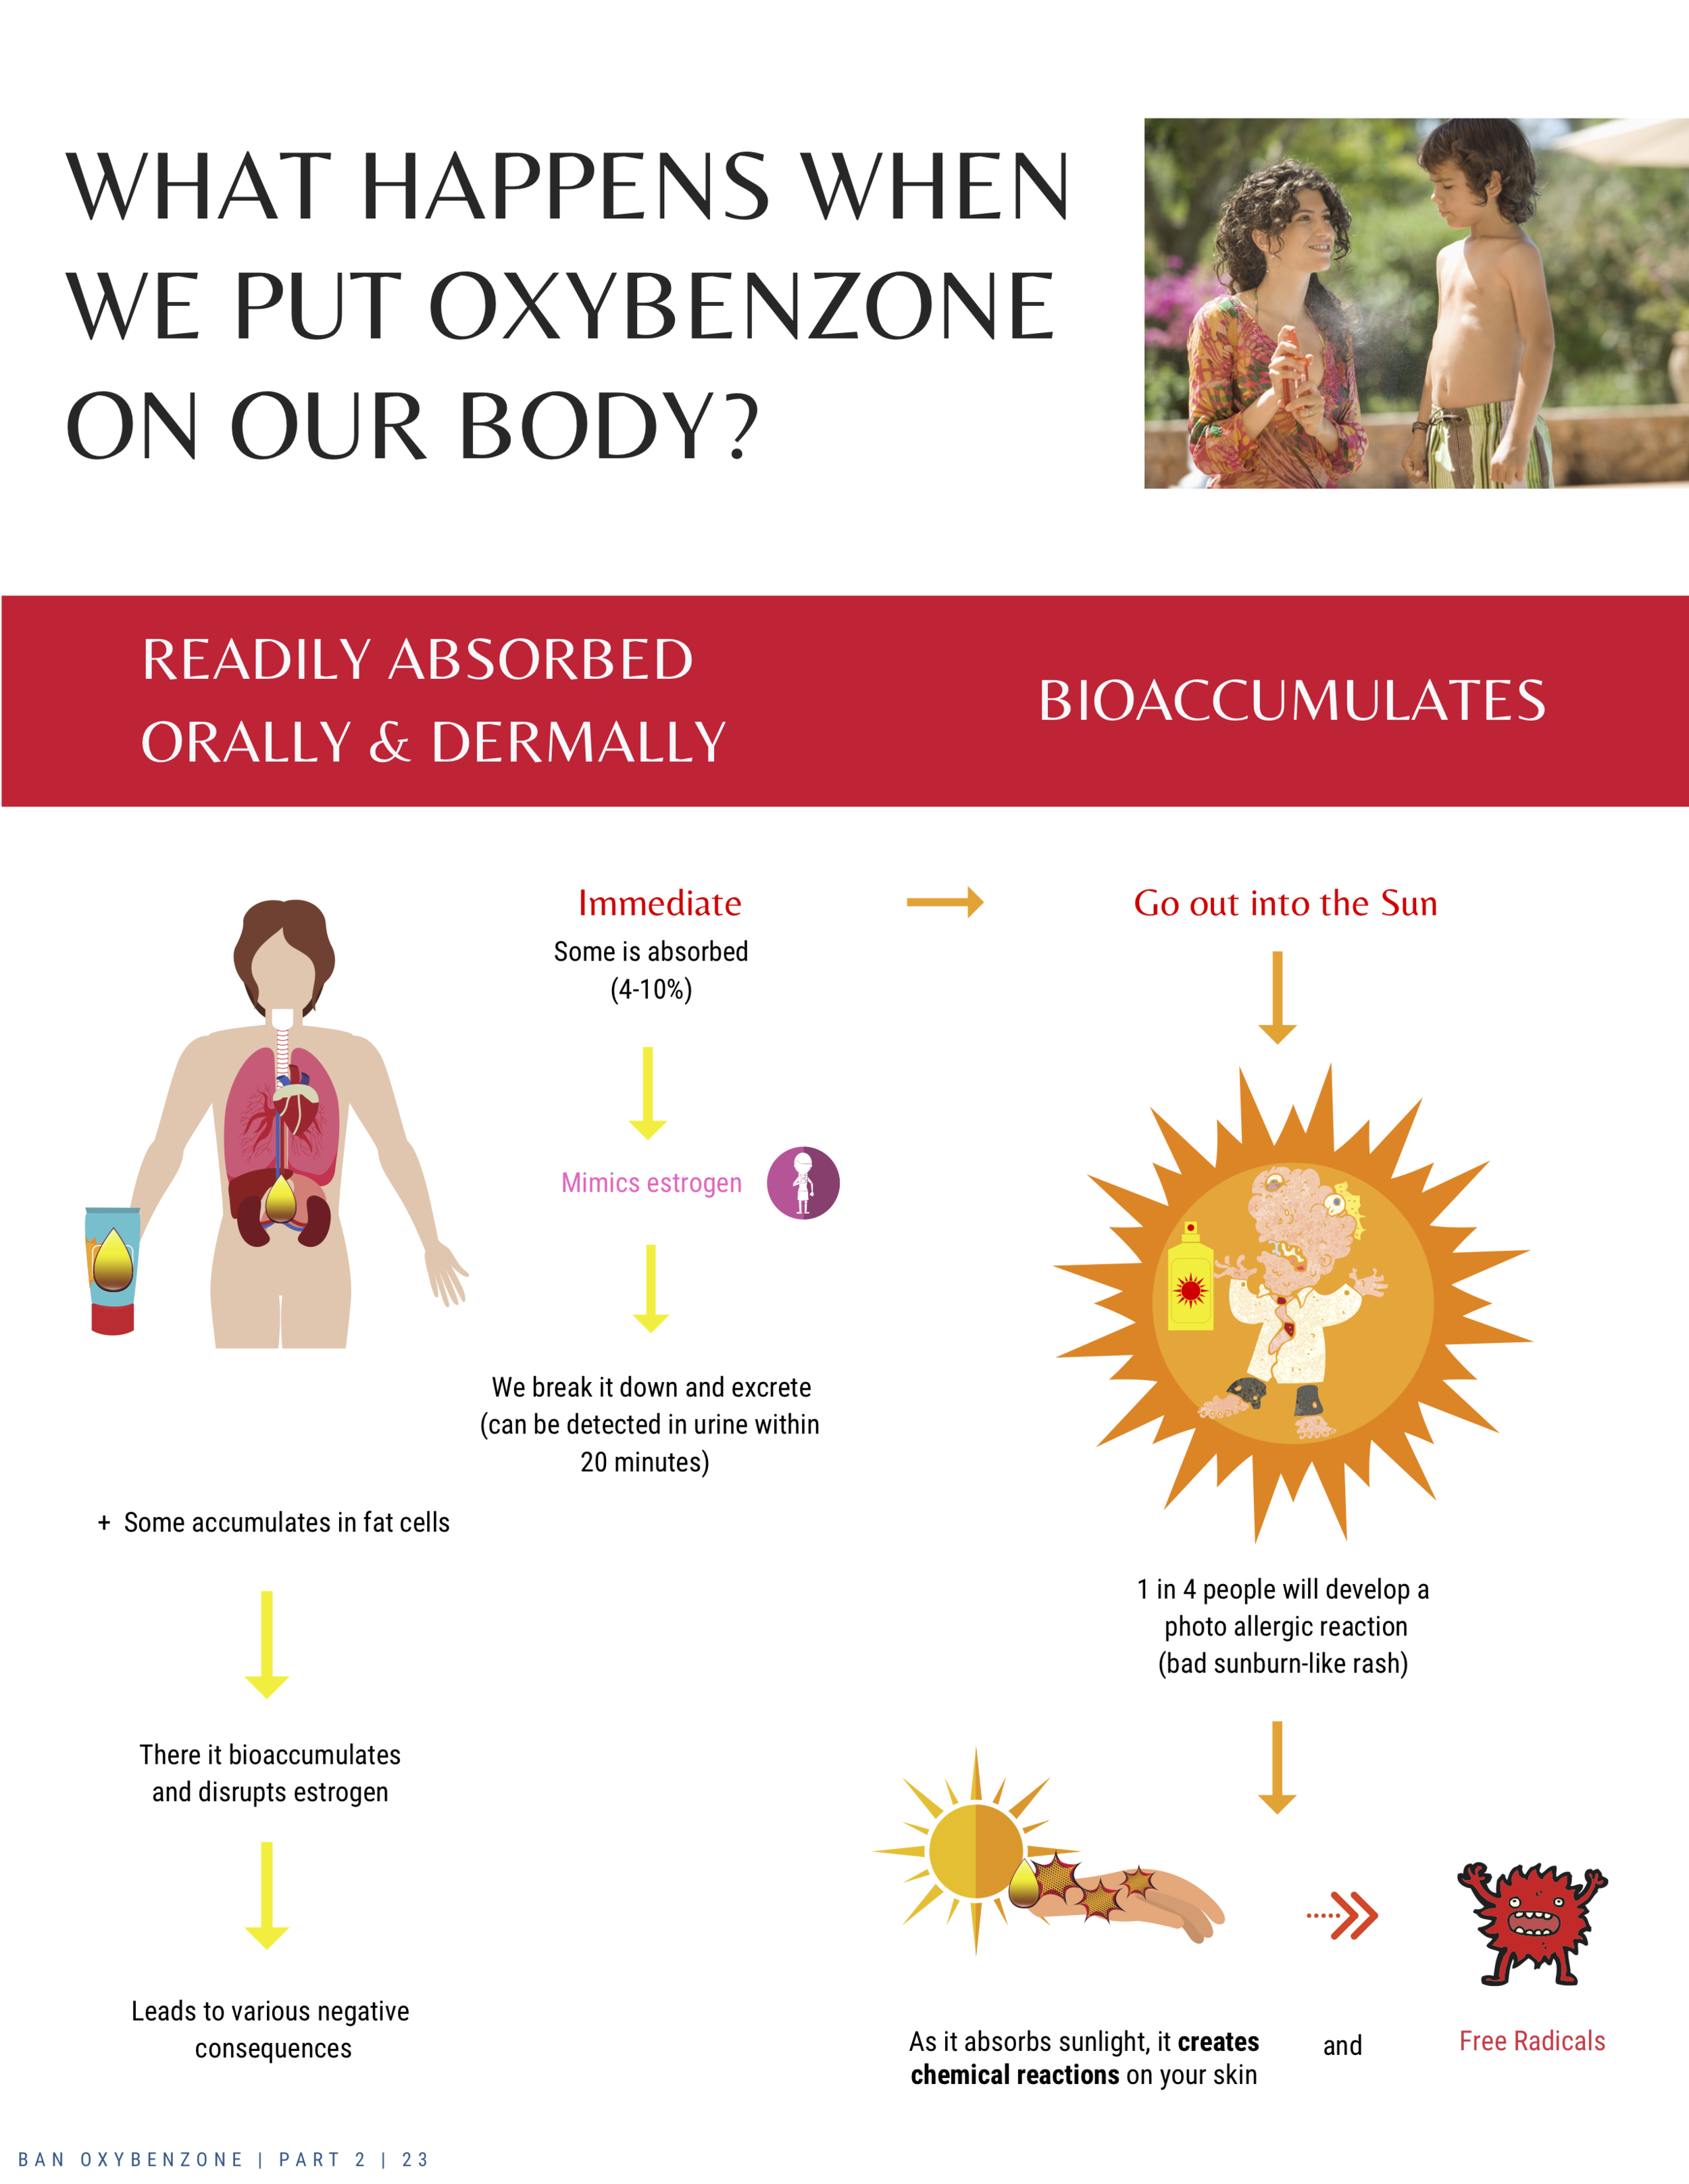 ban-oxybenzone-part-2-what-happens-when-we-put-oxybenzone-on-the-body-23.png